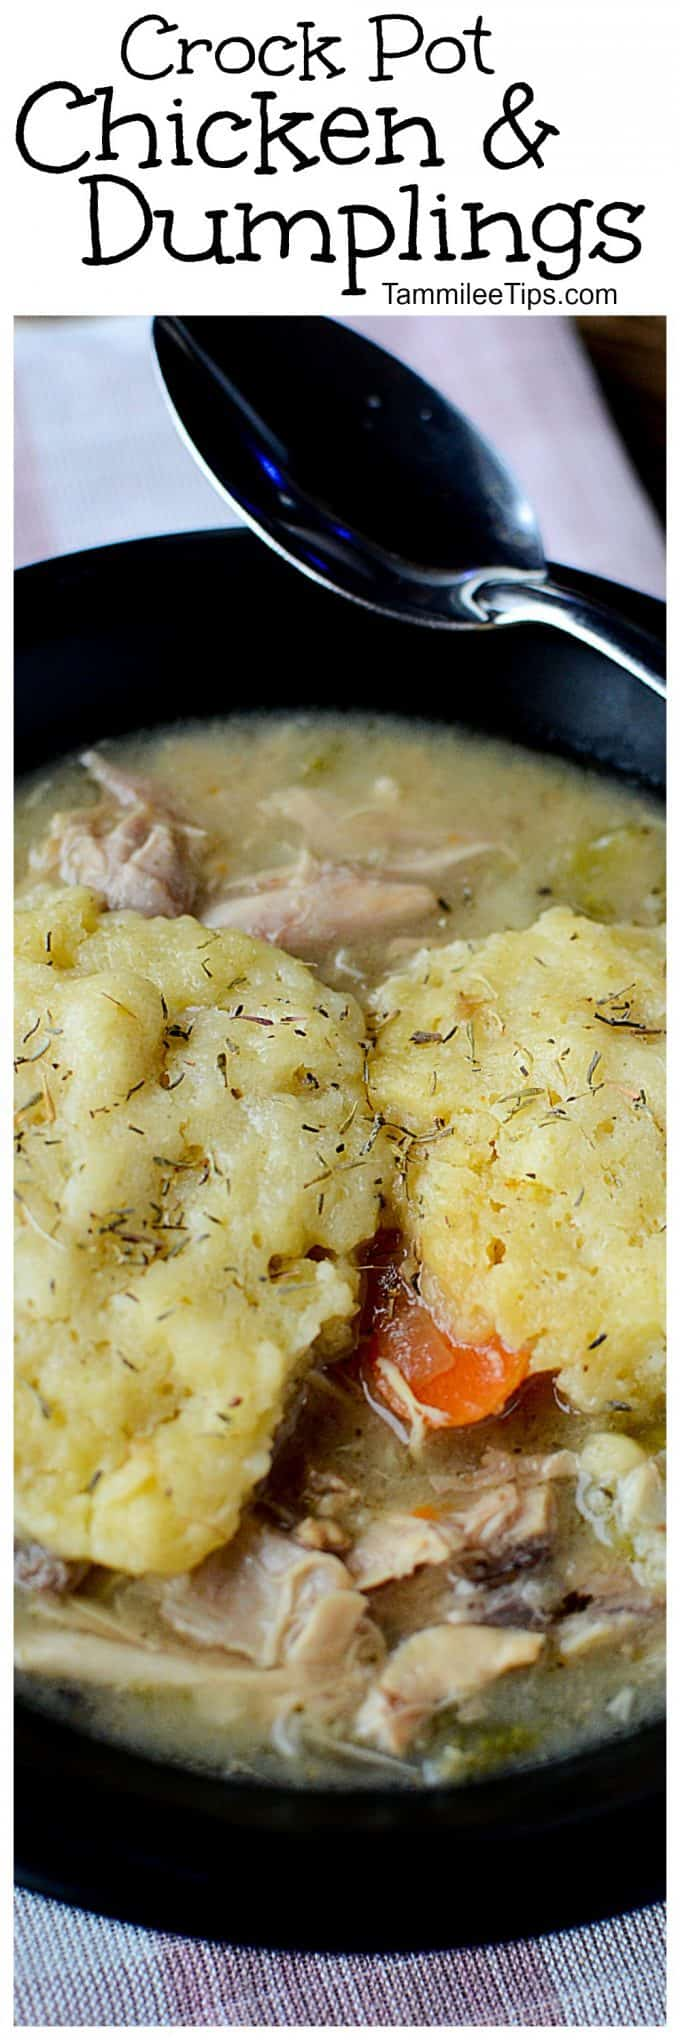 Easy Crockpot Slow Cooker Chicken and Dumplings Recipe for those days you can't make it to Cracker Barrell or need comfort food! Homemade with biscuits super delicious easy crock pot recipe!